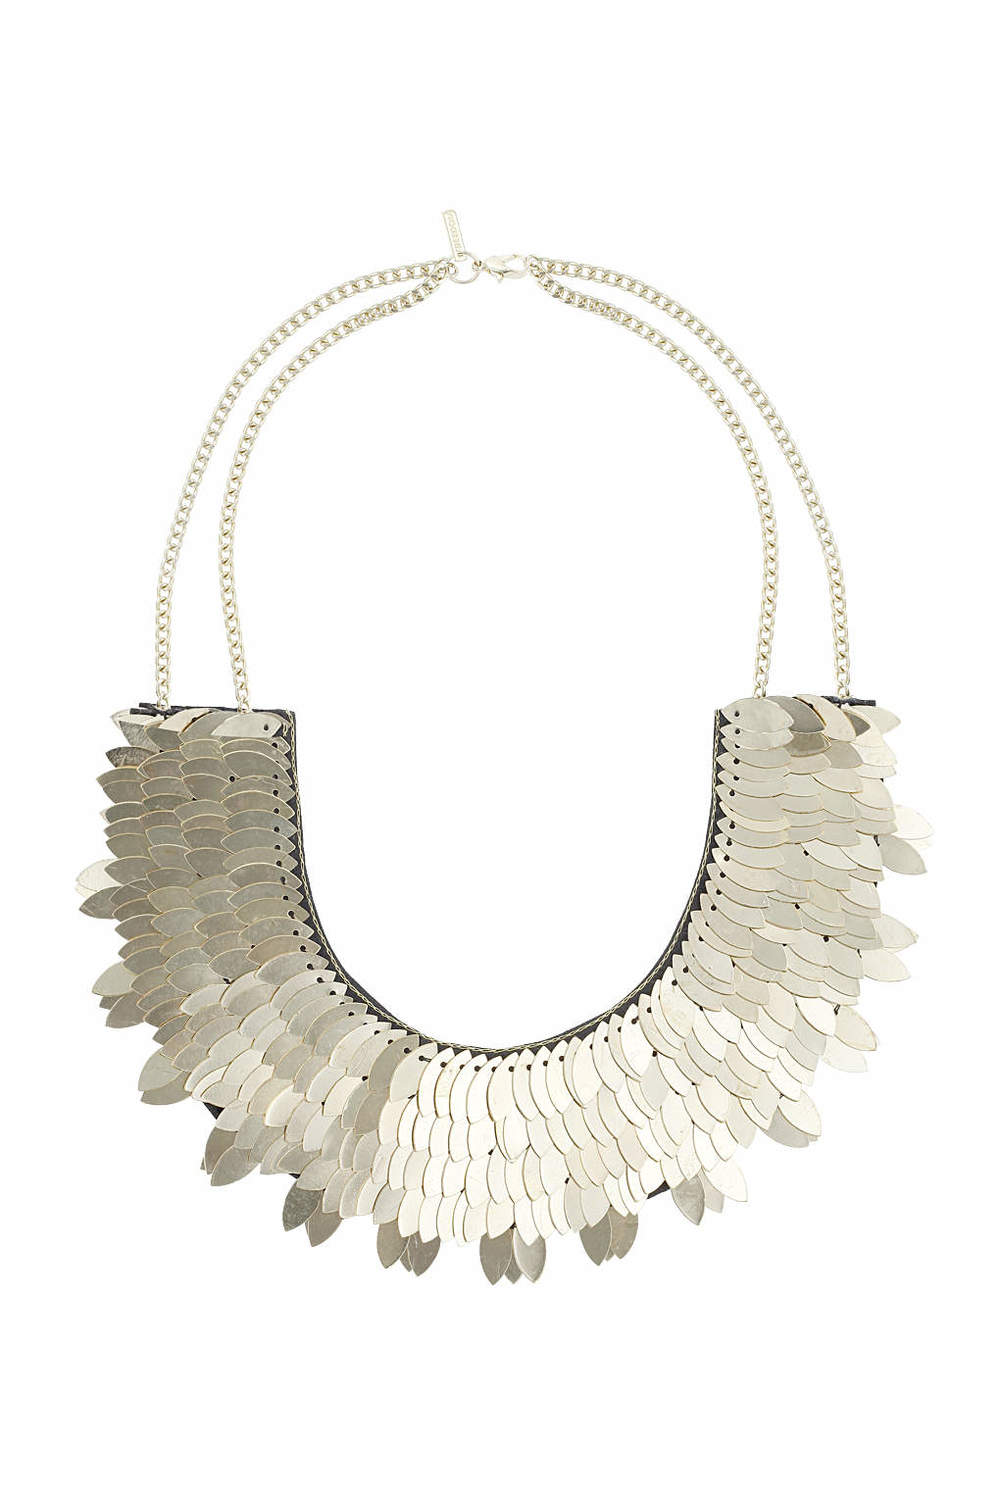 Statement Leaf Necklace. Topshop. $40.